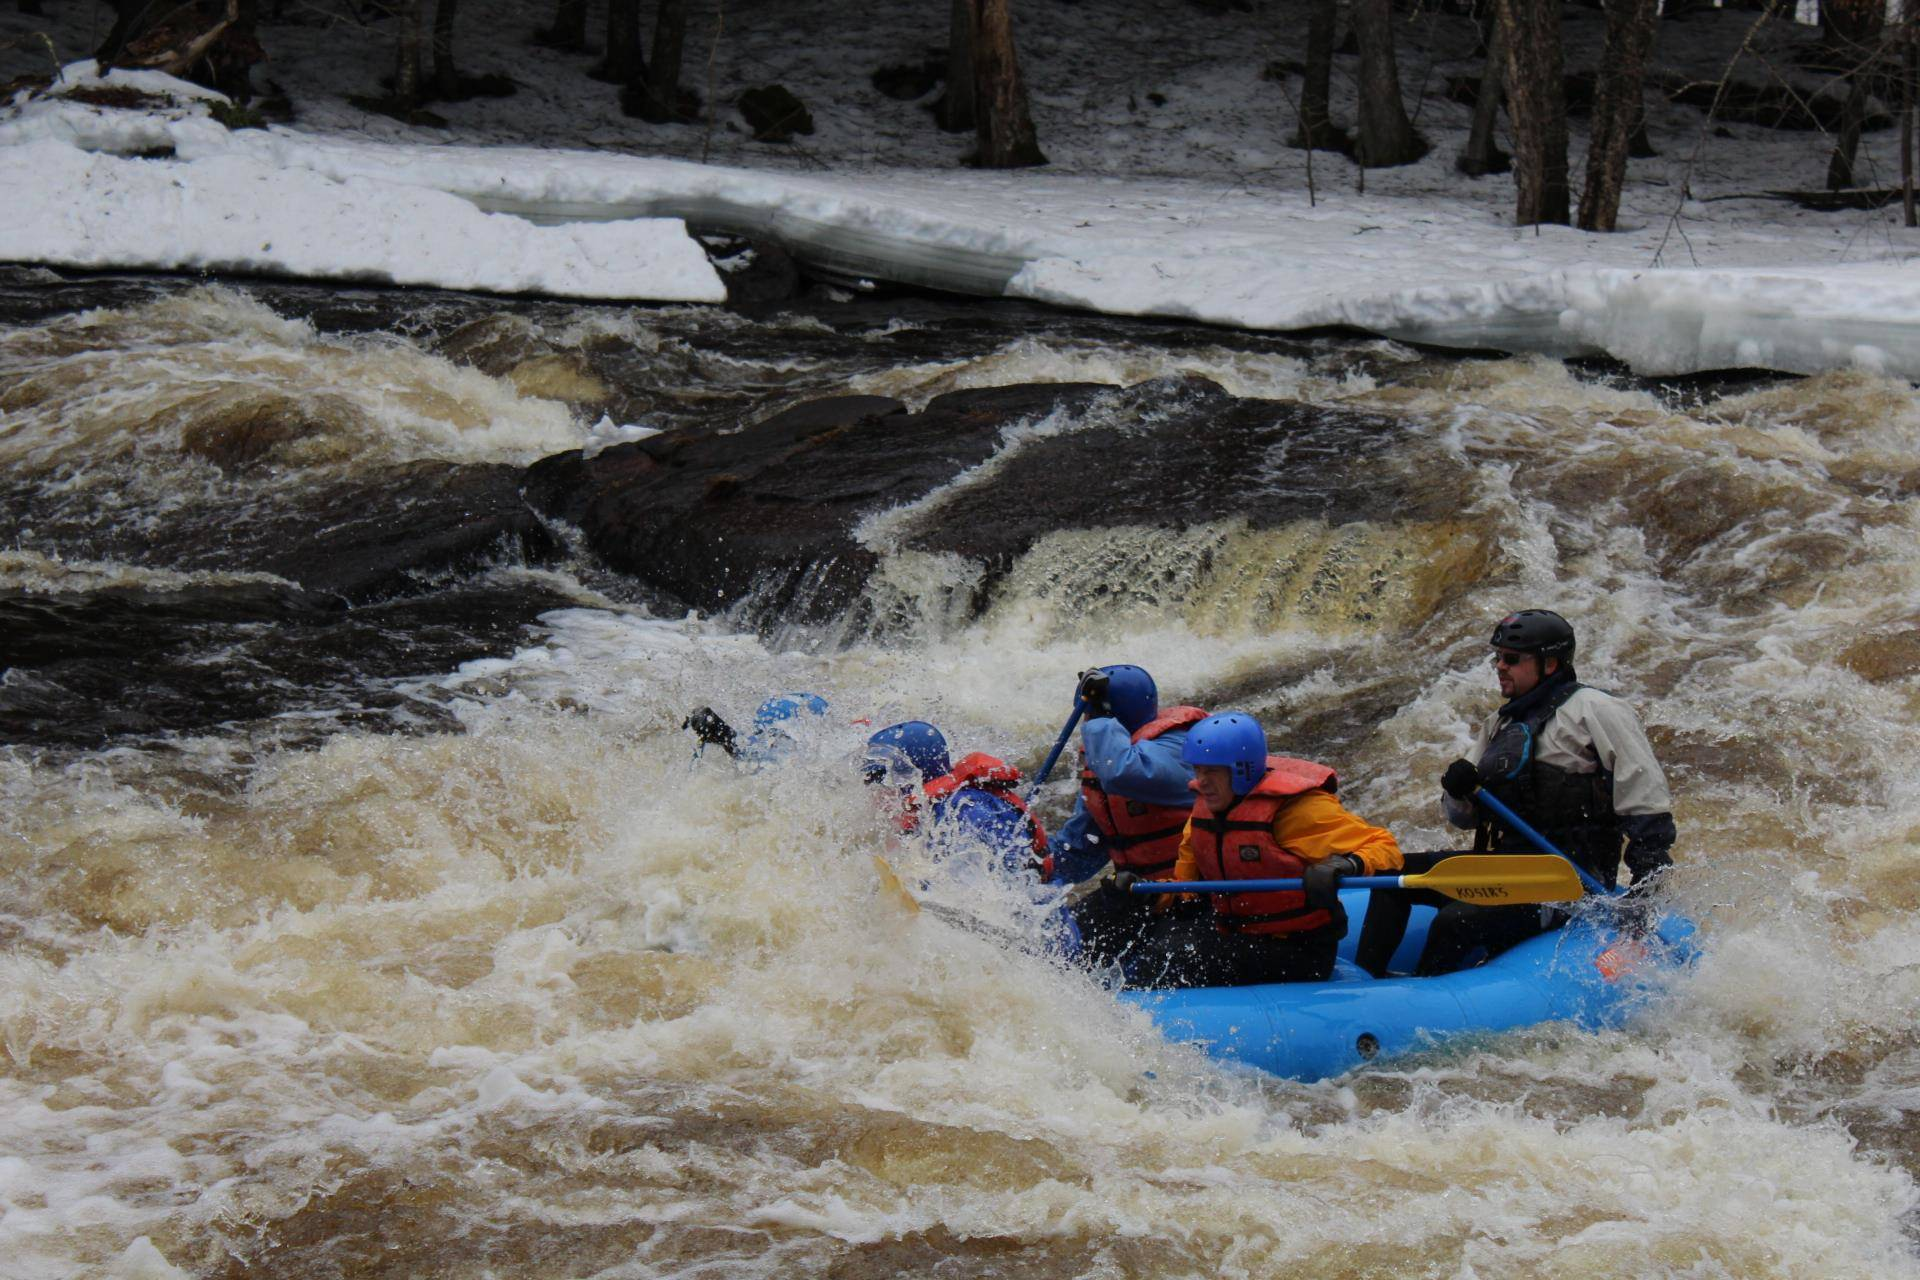 Wisconsin Whitewater Rafting - Kosir's Rapid Rafts & Campground